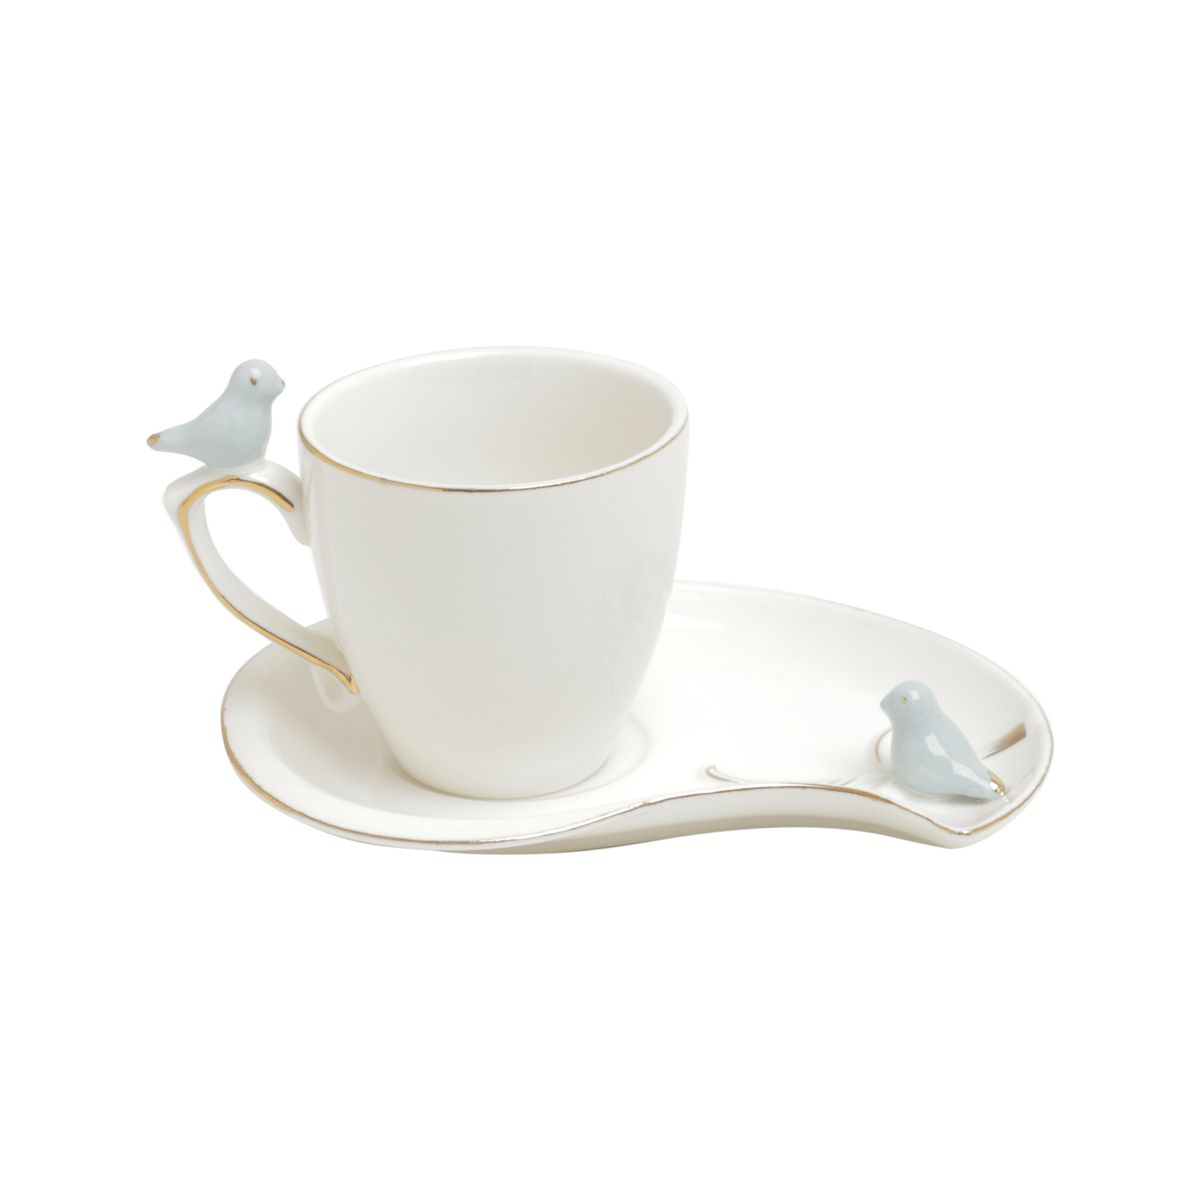 Jogo 6 xícaras 90ml para café de porcelana colorida com pires design Cute Birds Wolff - 35467